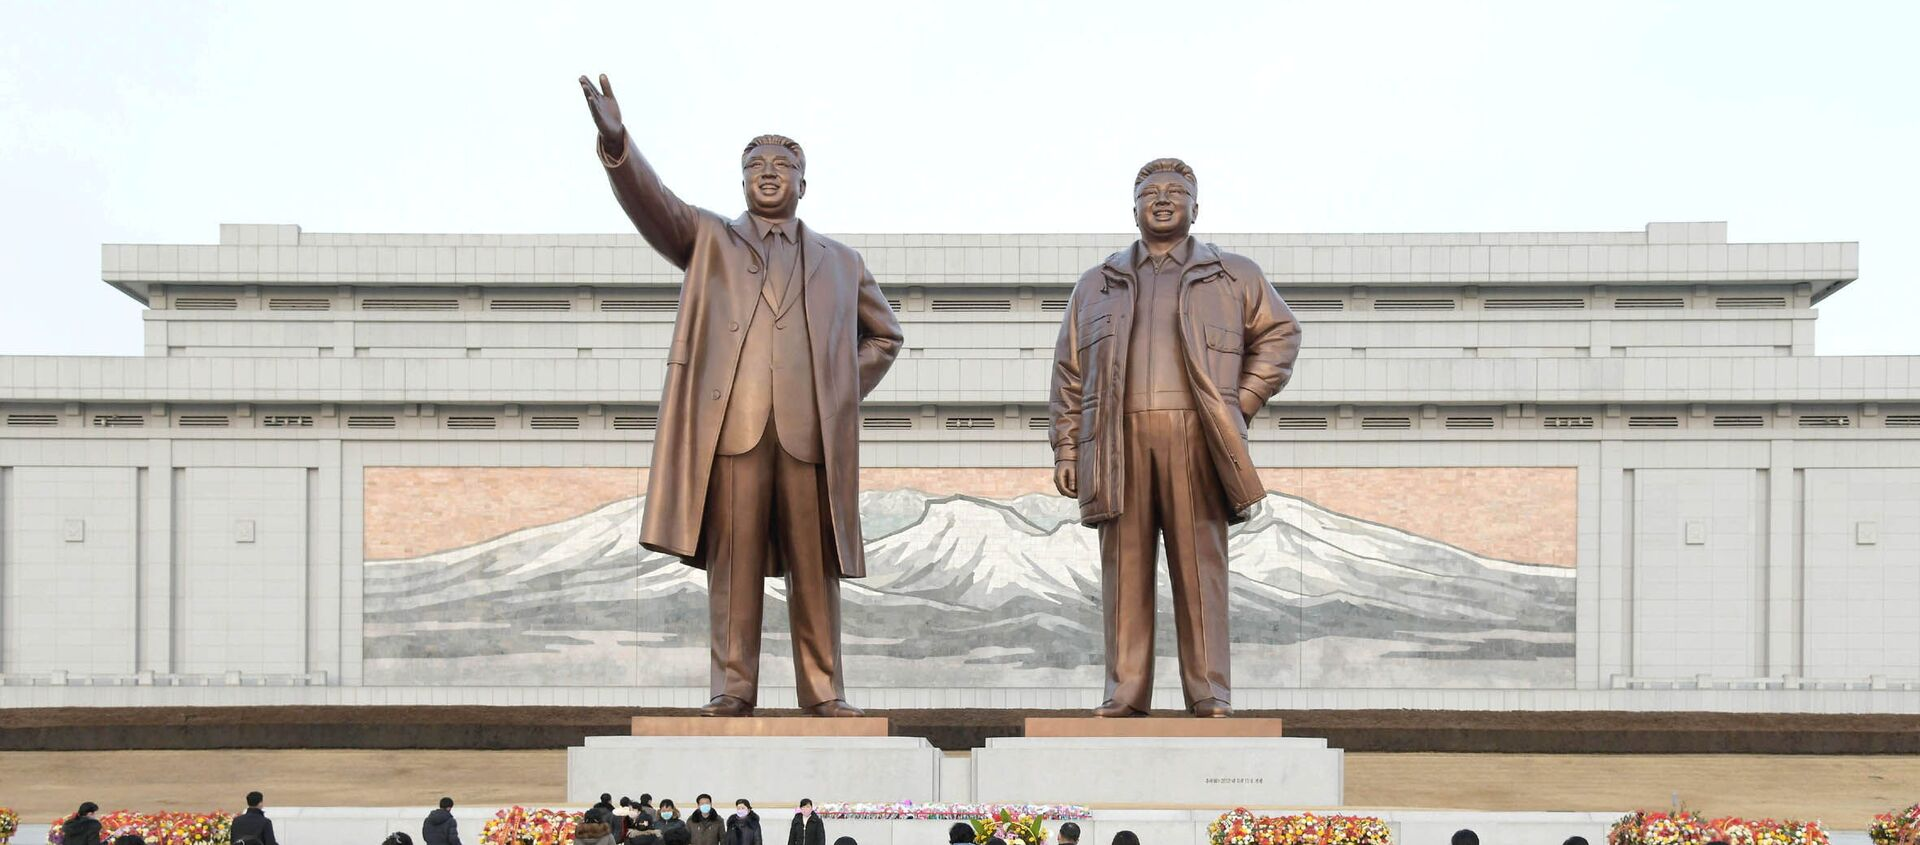 People lay floral tributes in front of the bronze statues of the late leaders Kim Il Sung and his son Kim Jong Il to commemorate the Day of the Shining Star, the birth anniversary of Kim Jong Il, at the Mansudae Grand Monument in Pyongyang, North Korea in this undated photo released by North Korea's Korean Central News Agency (KCNA) on February 17, 2021. - Sputnik Italia, 1920, 28.04.2021